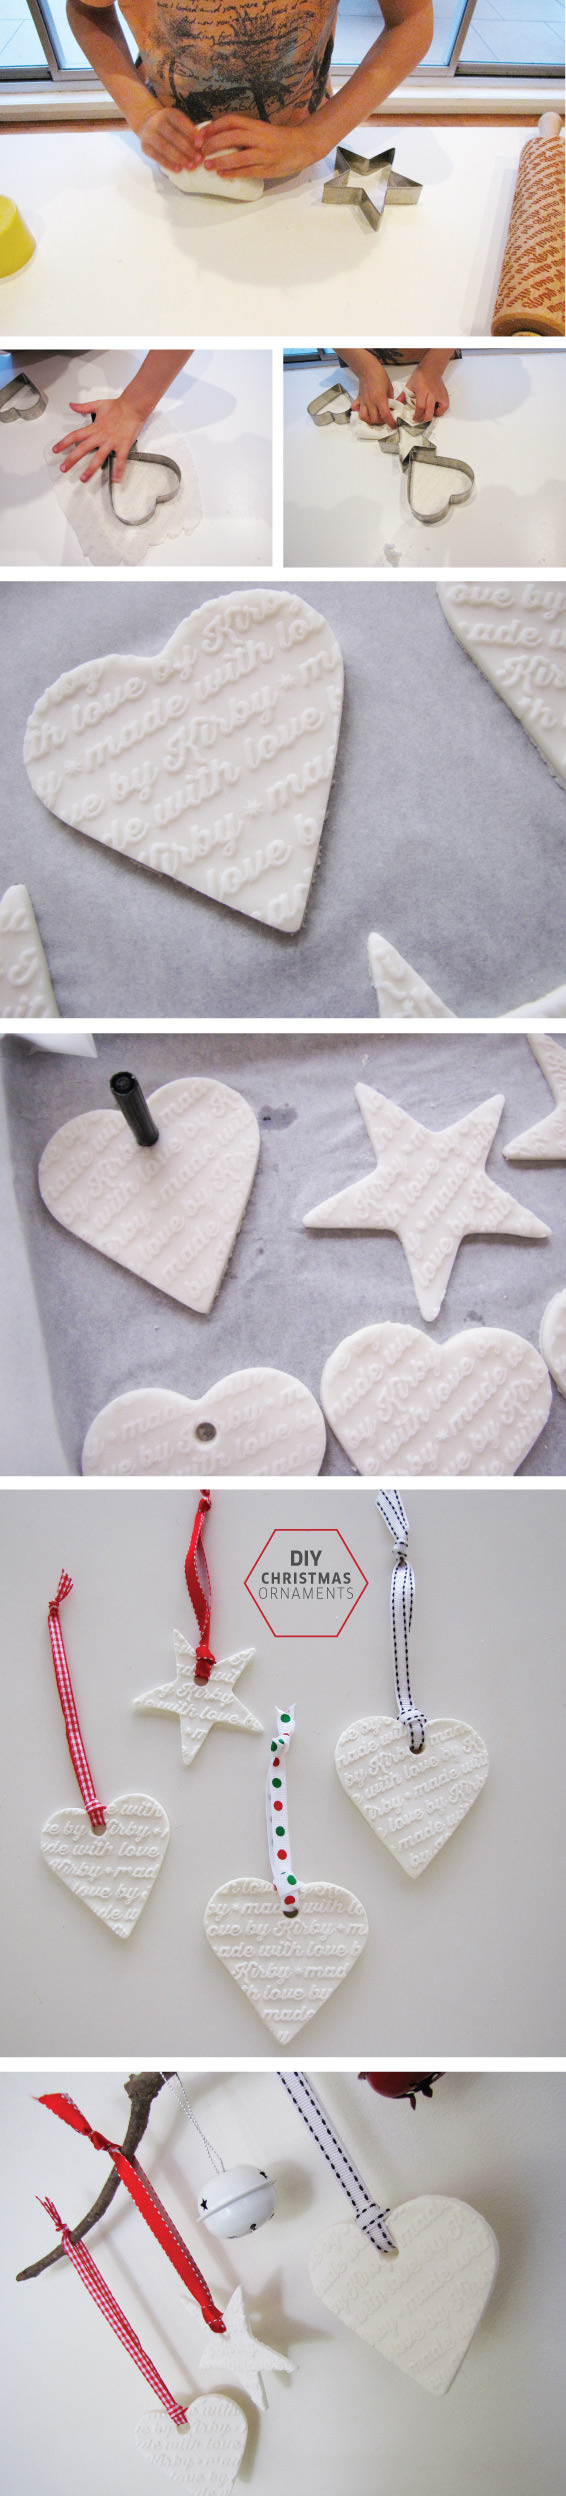 TOMFO-DIY-CHRISTMAS-ORNAMENTS8